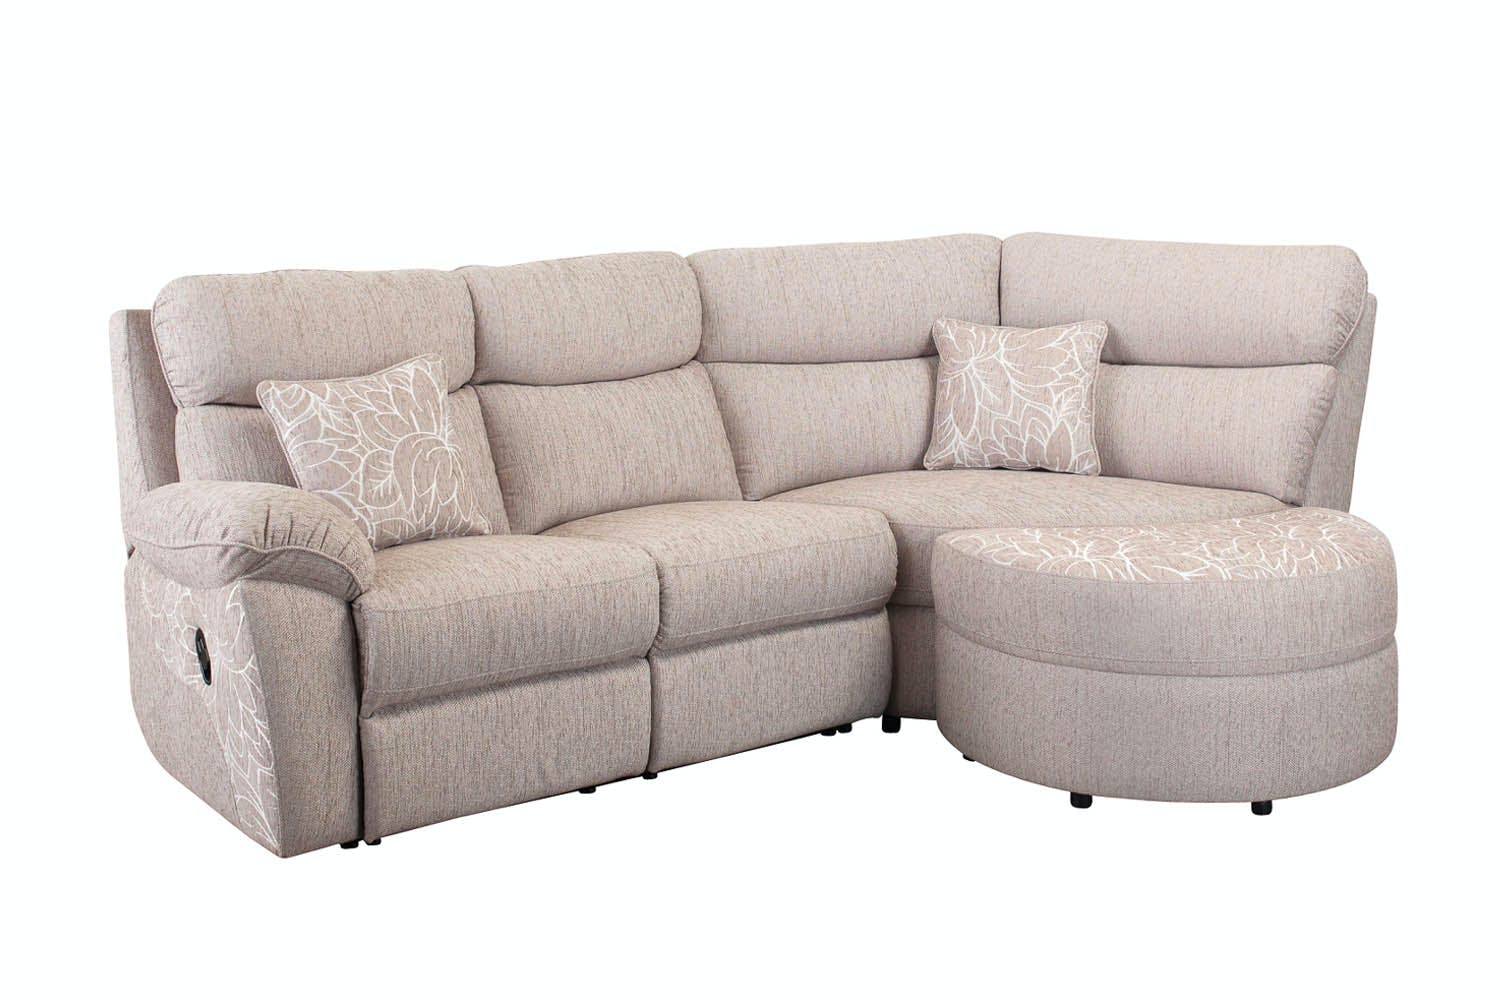 Harveys Corner Sofa Bed